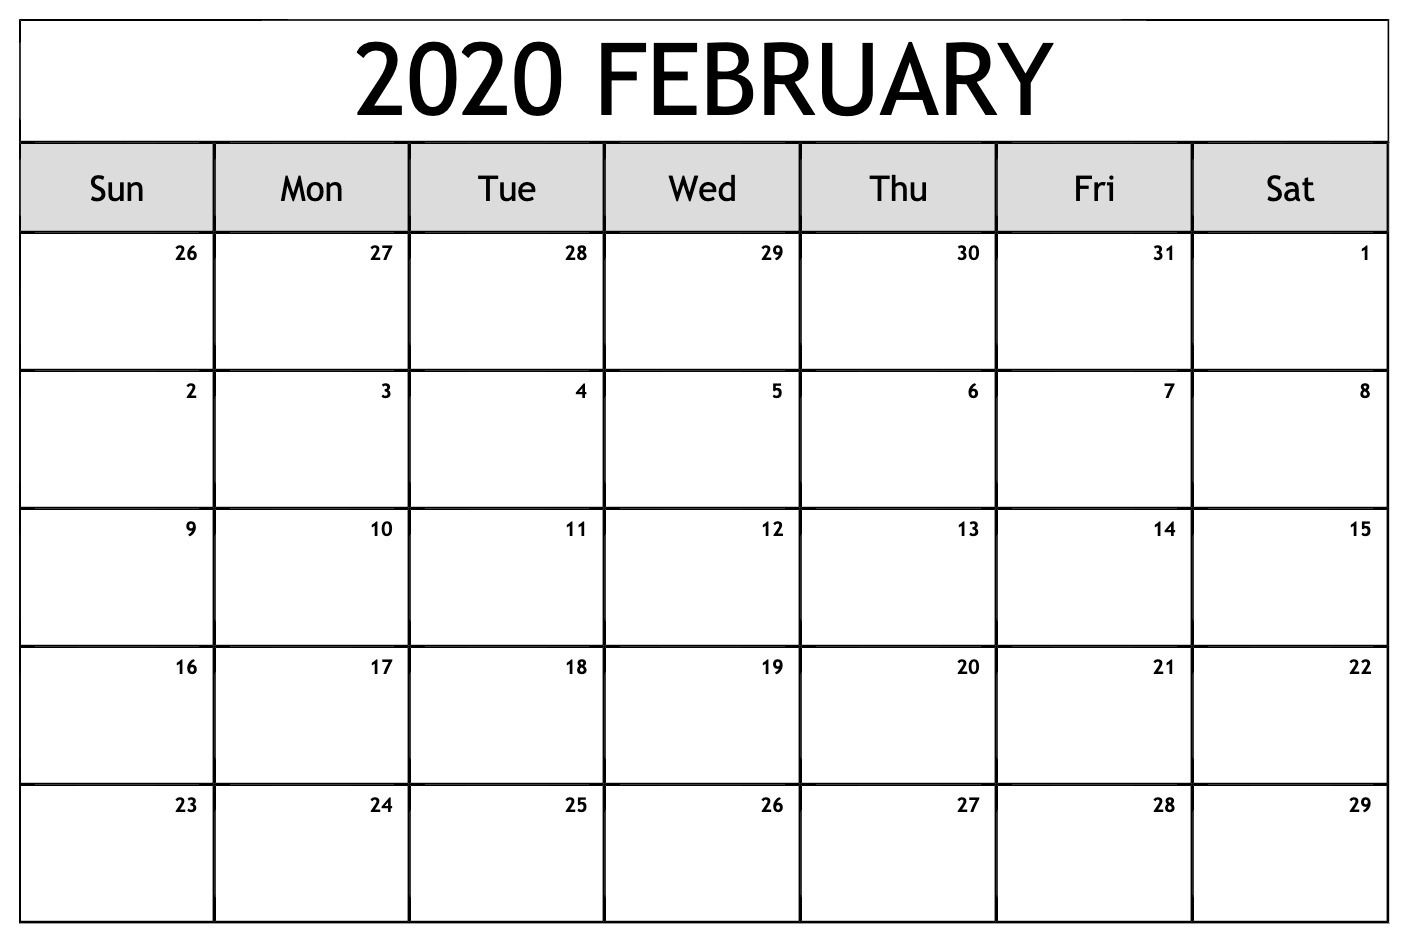 February Calendar 2020 Printable Notes And To Do List In 2020